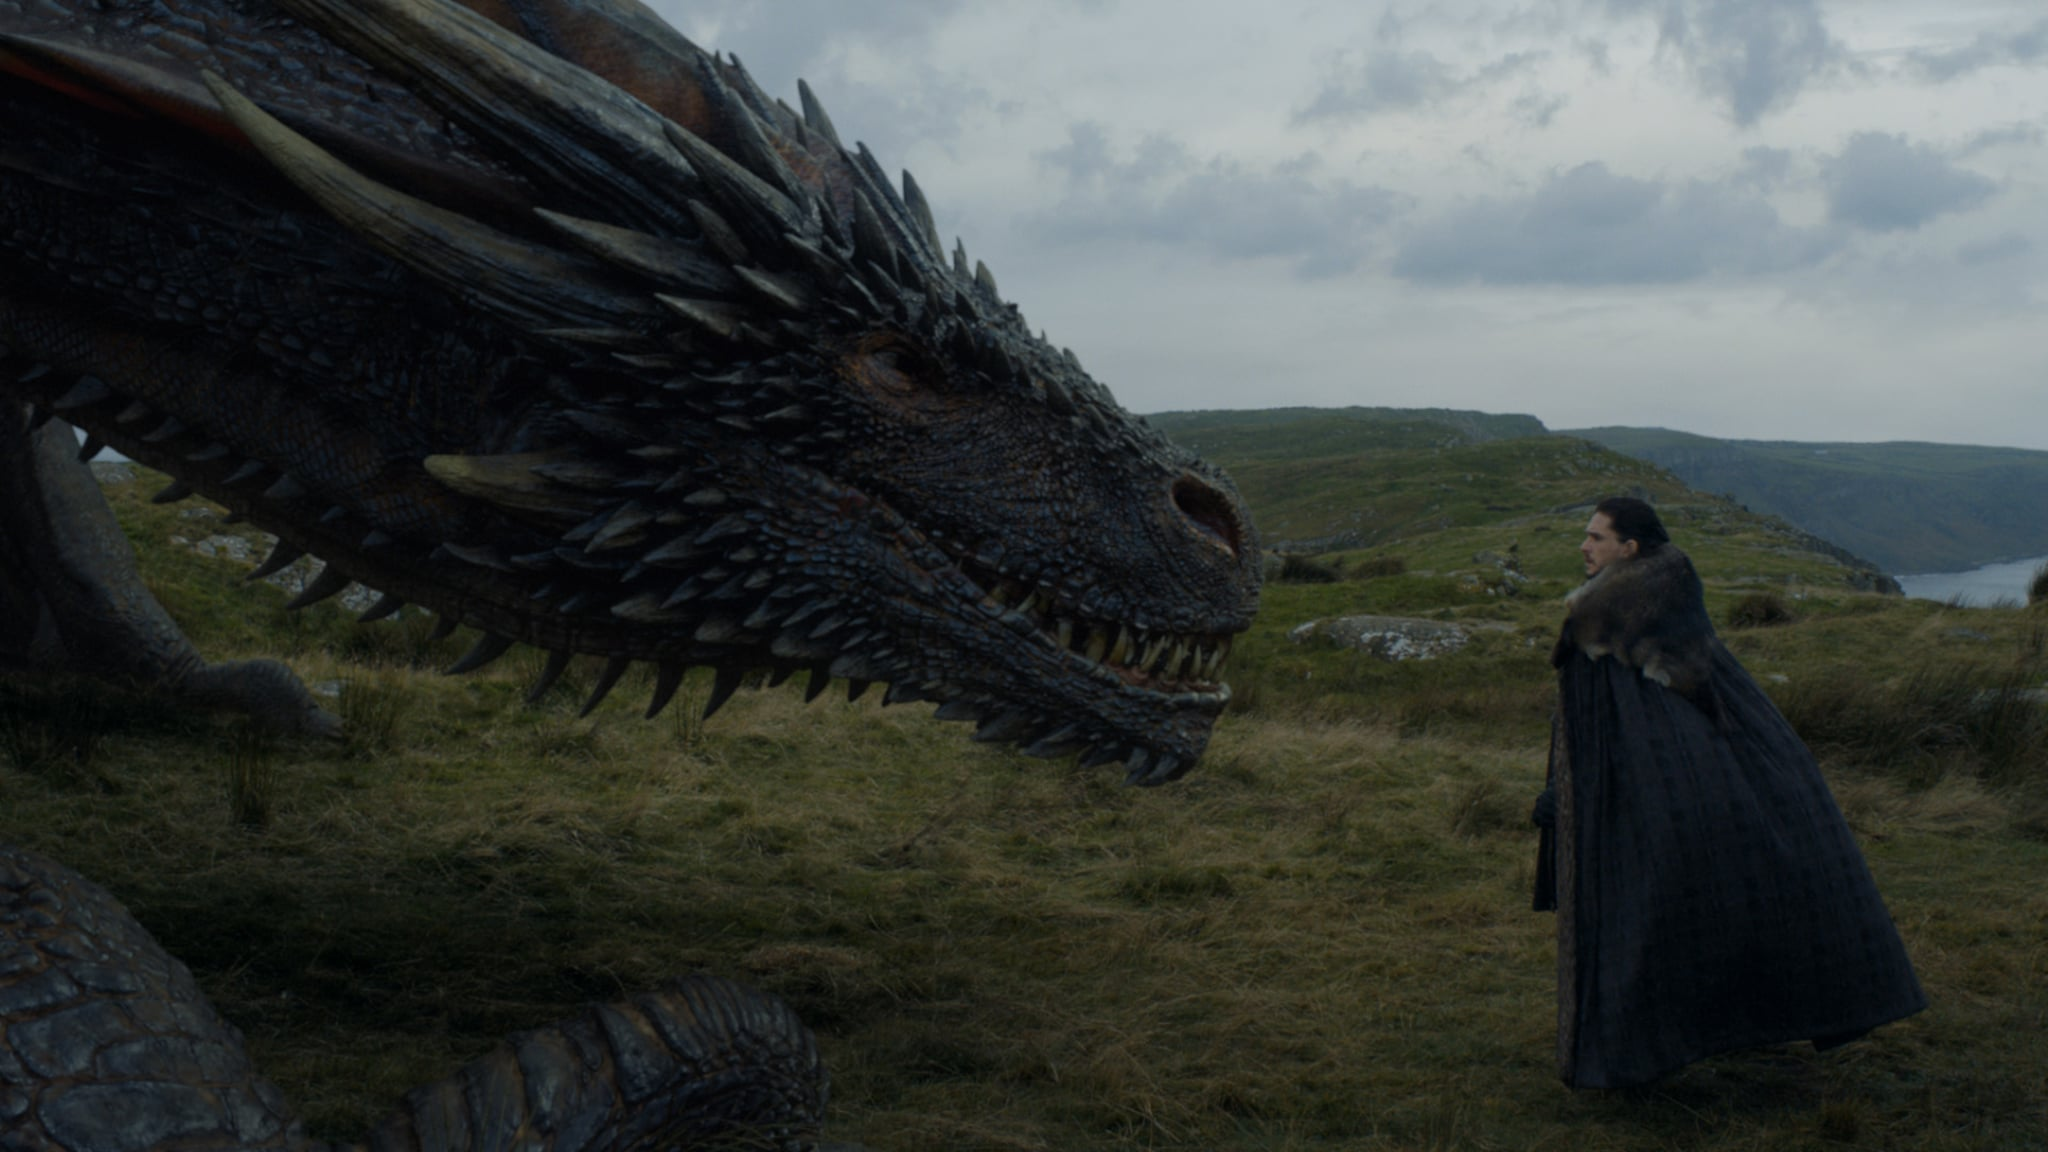 Will There Be Any Dragons After Daenerys? | POPSUGAR